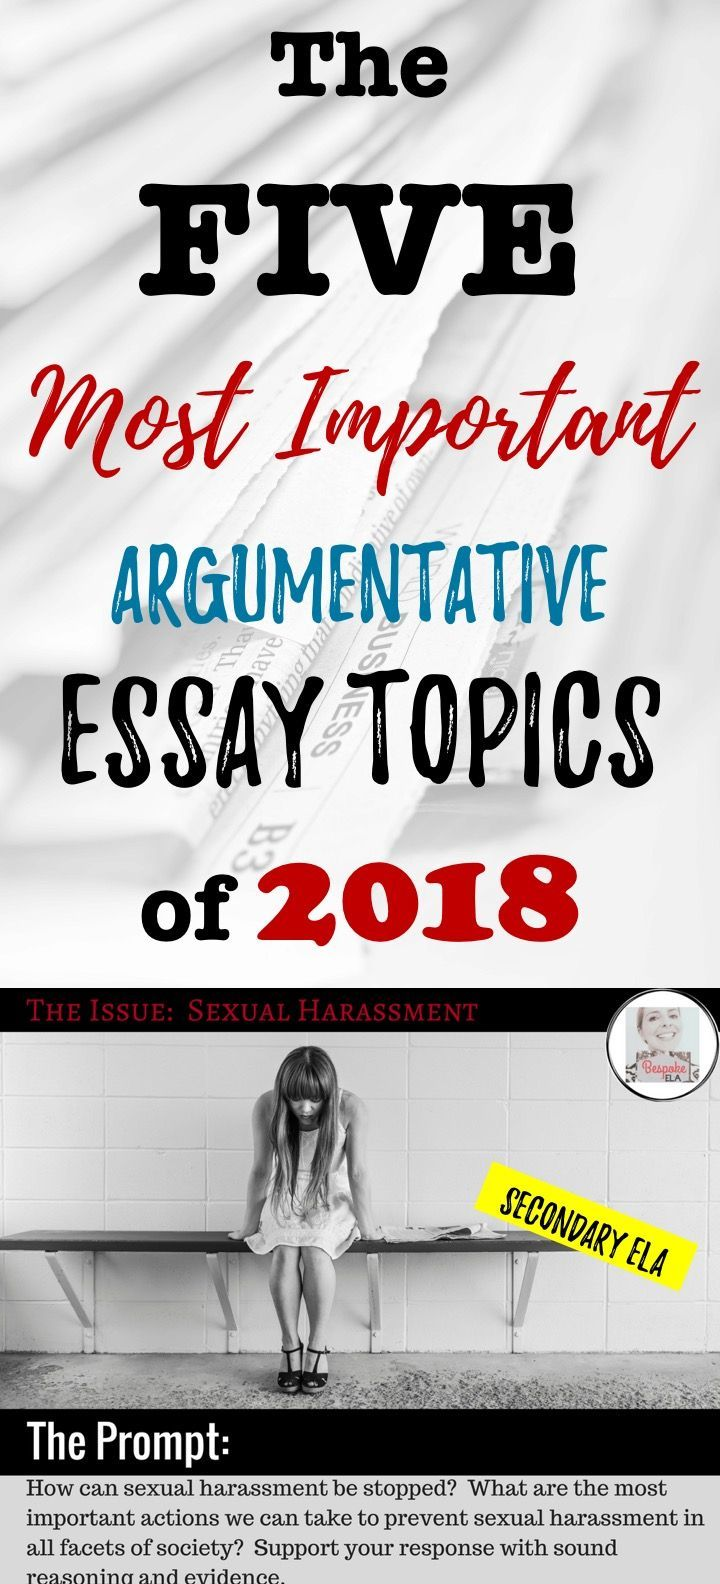 003 Research Paper Argumentative Essay Topics Remarkable 2018 In The Philippines Easy Middle School Full